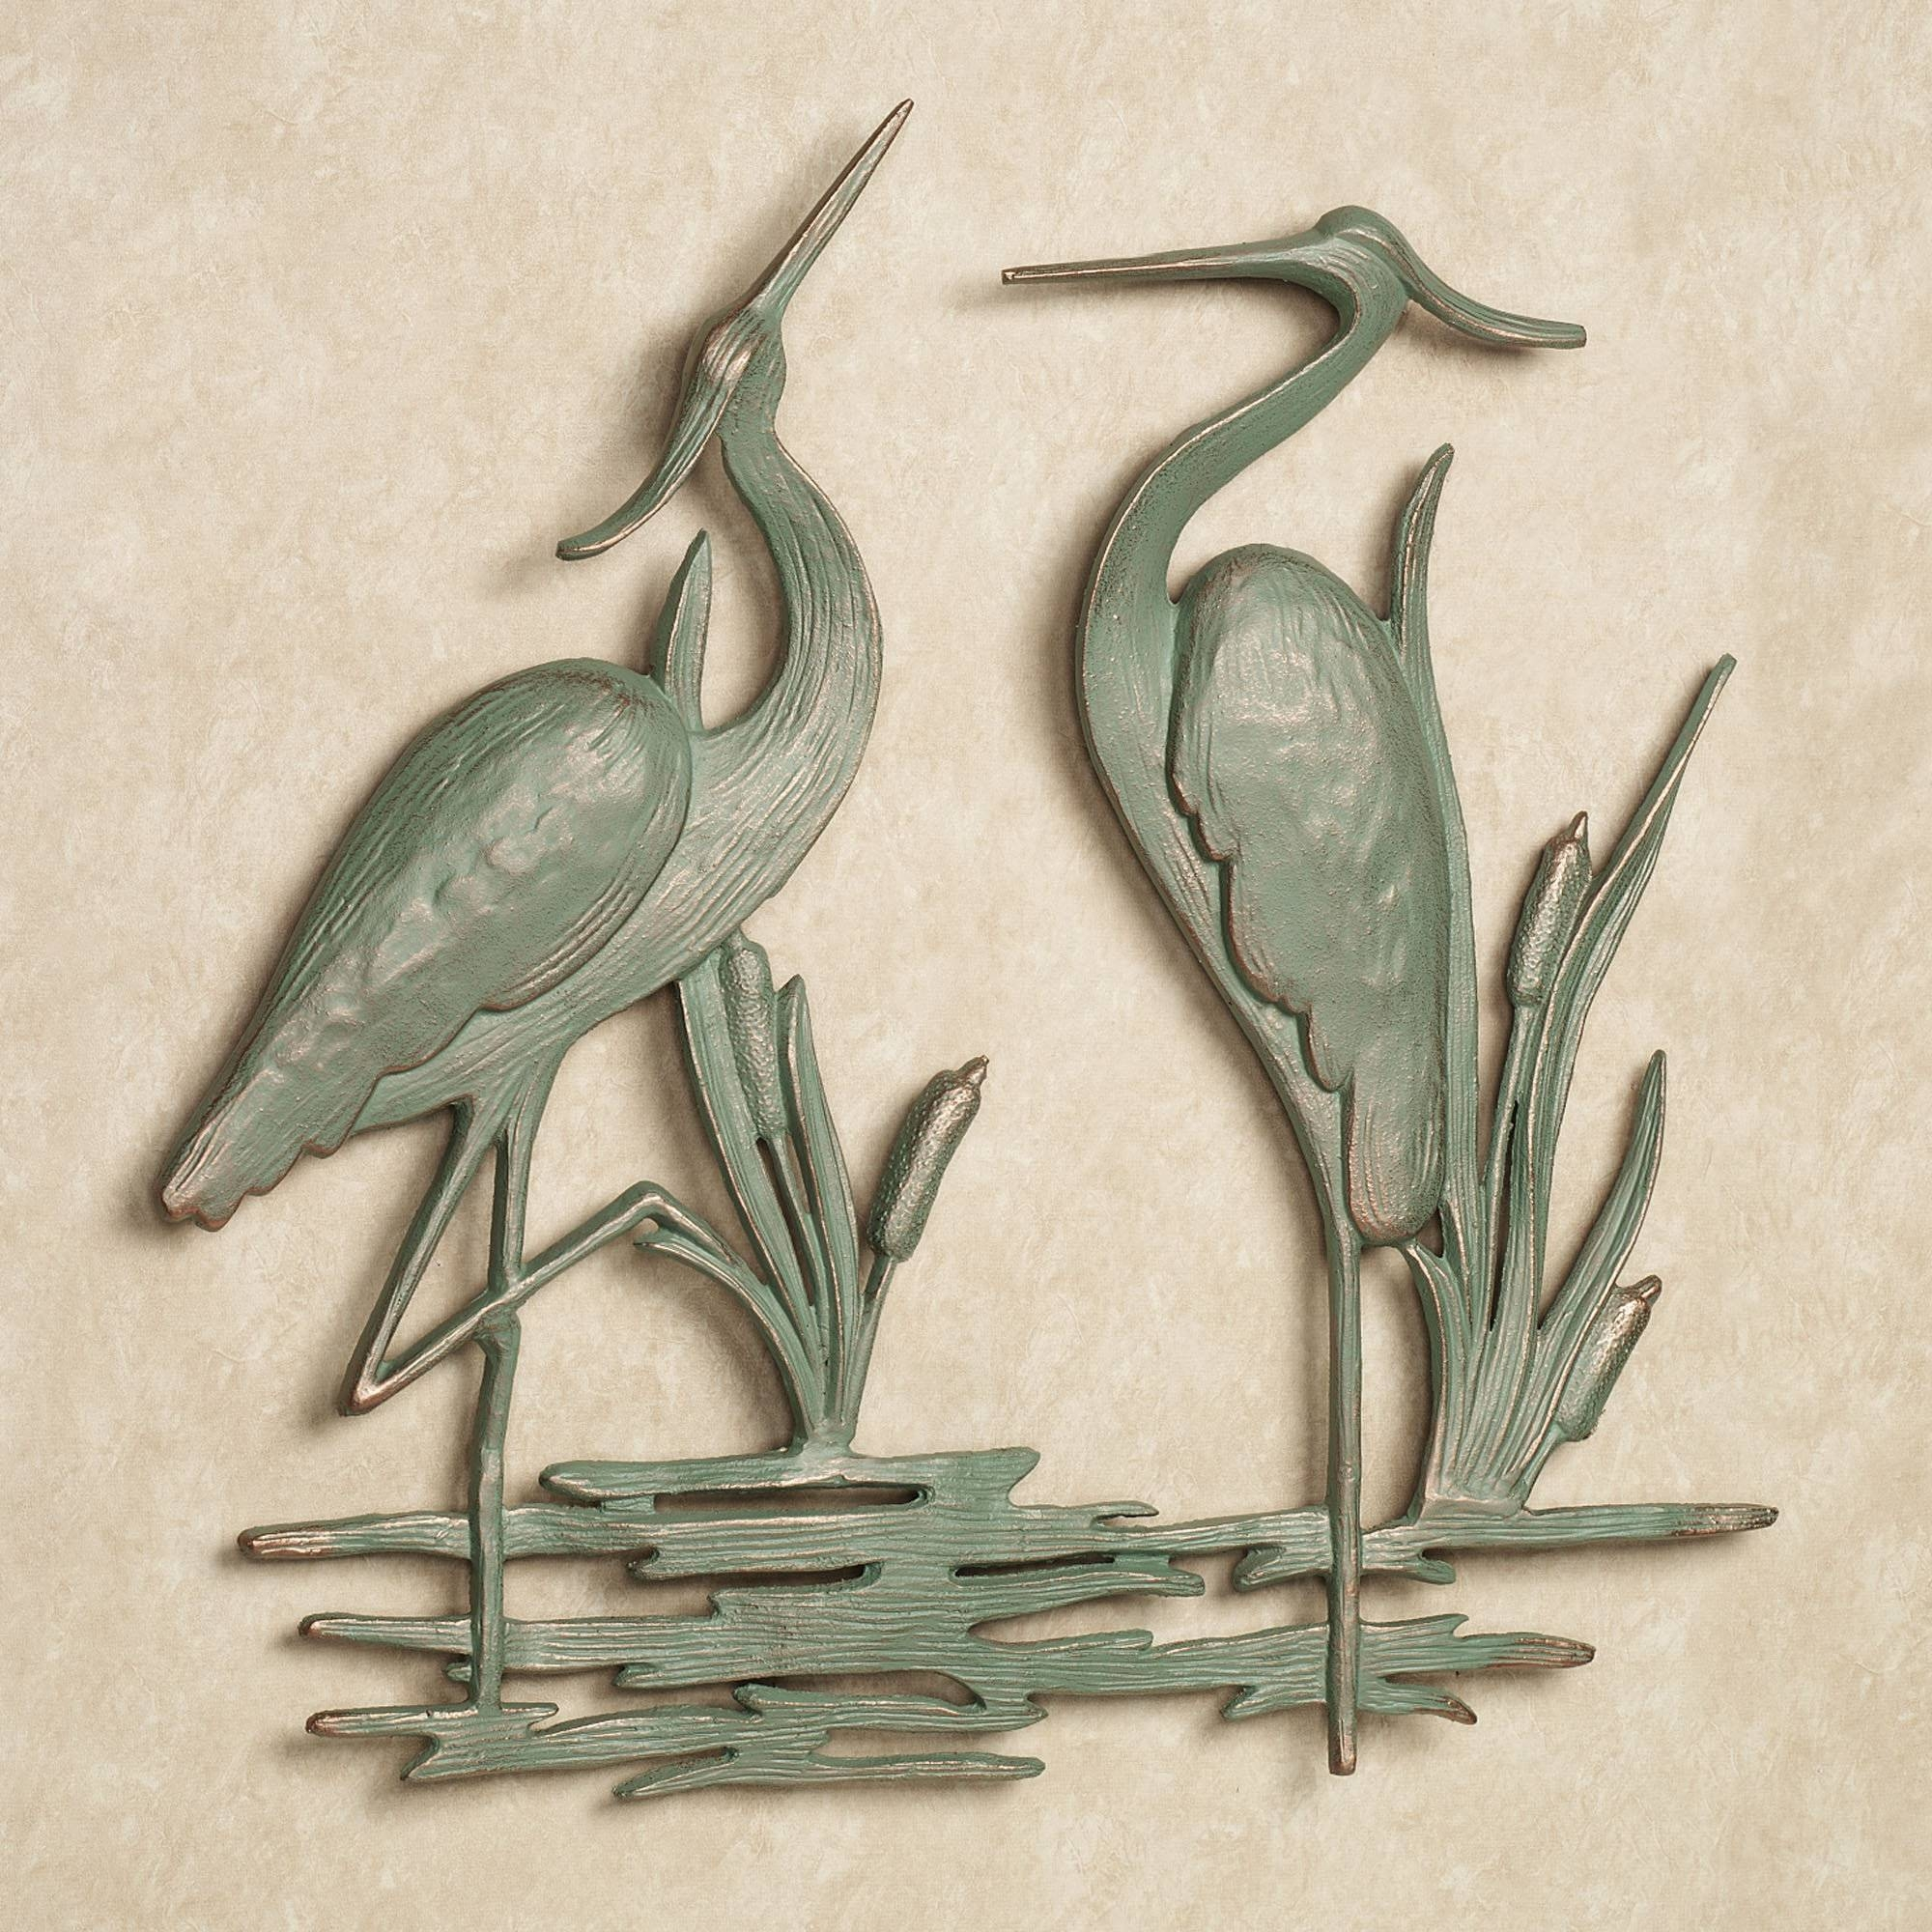 First Class Coastal Metal Wall Art Blue 3D Decor Outdoor Exterior With Regard To Most Recently Released Coastal Metal Wall Art (View 18 of 20)